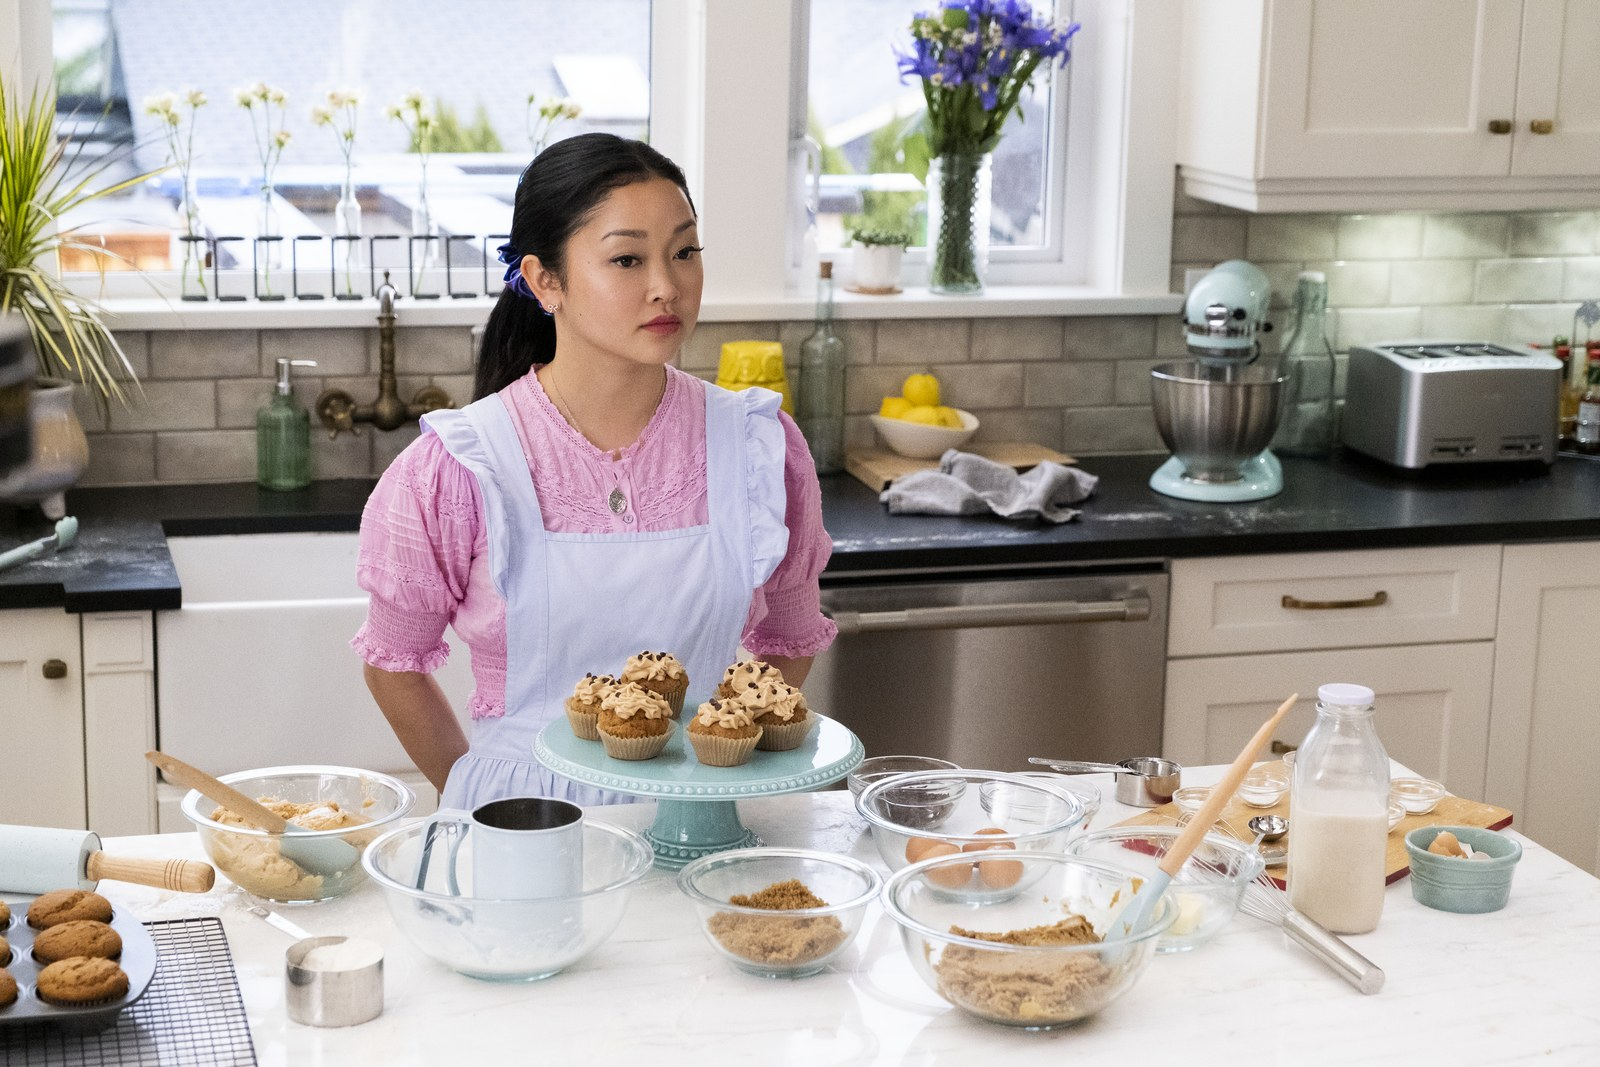 Lara Jean bakes cupcakes in a kitchen